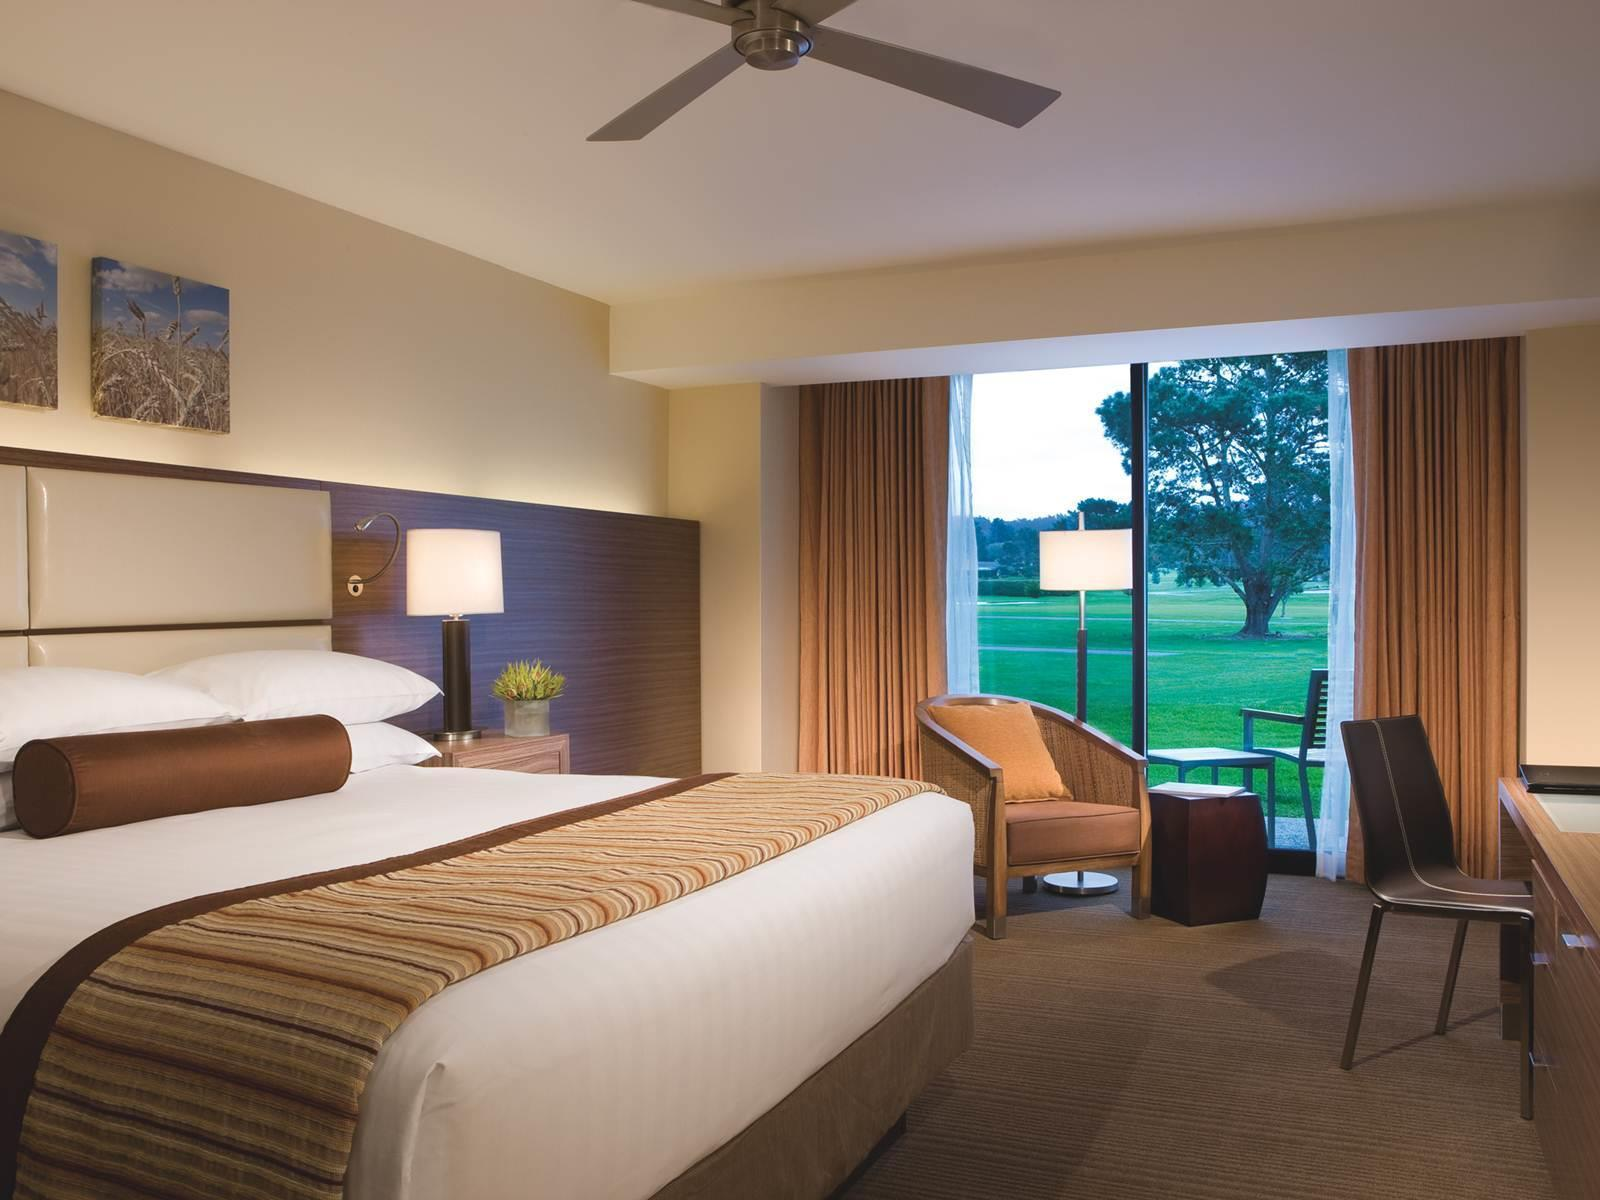 King Room with Balcony and Golf Course View